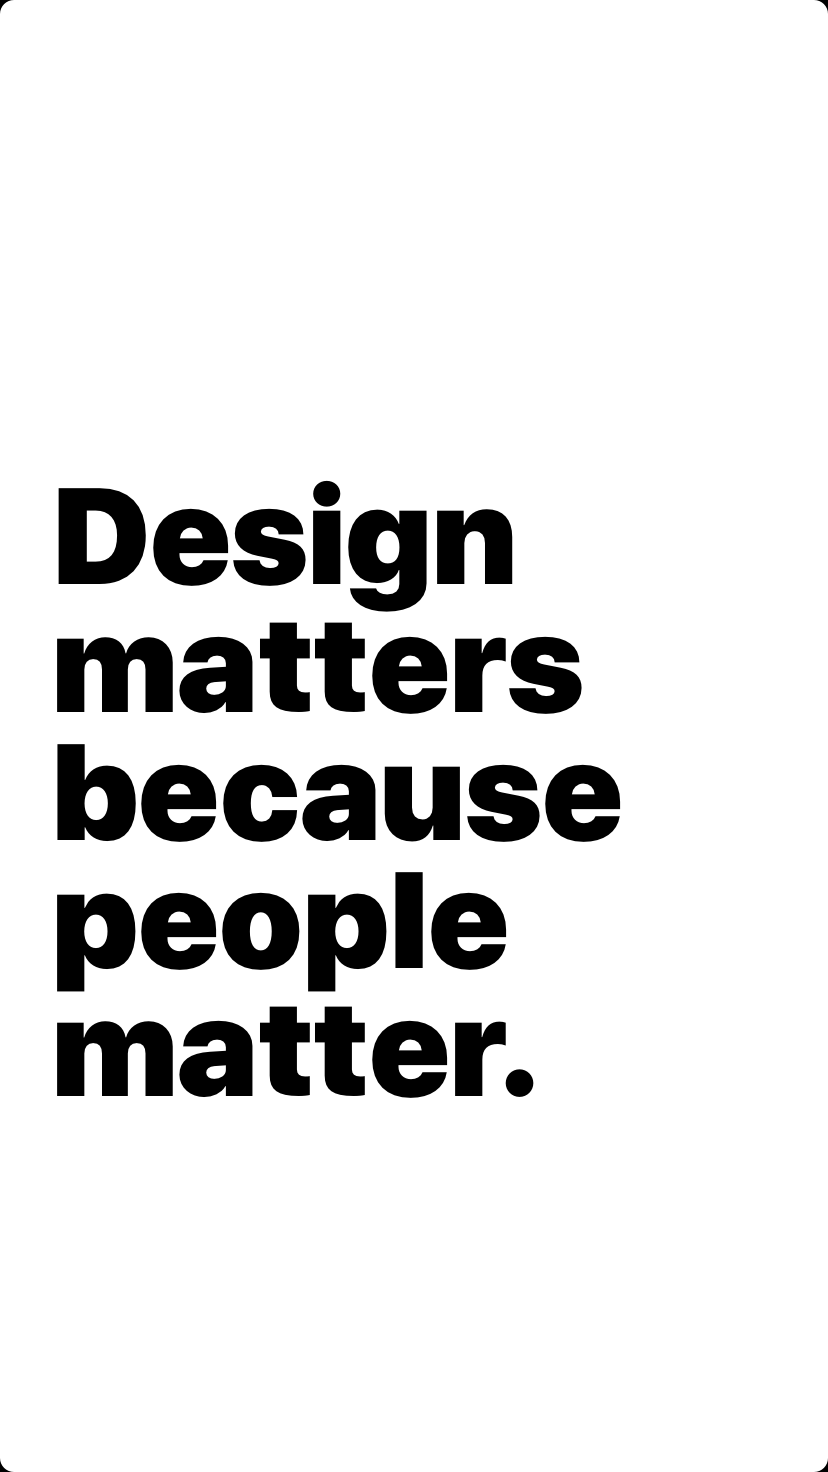 Design matters because people matter.